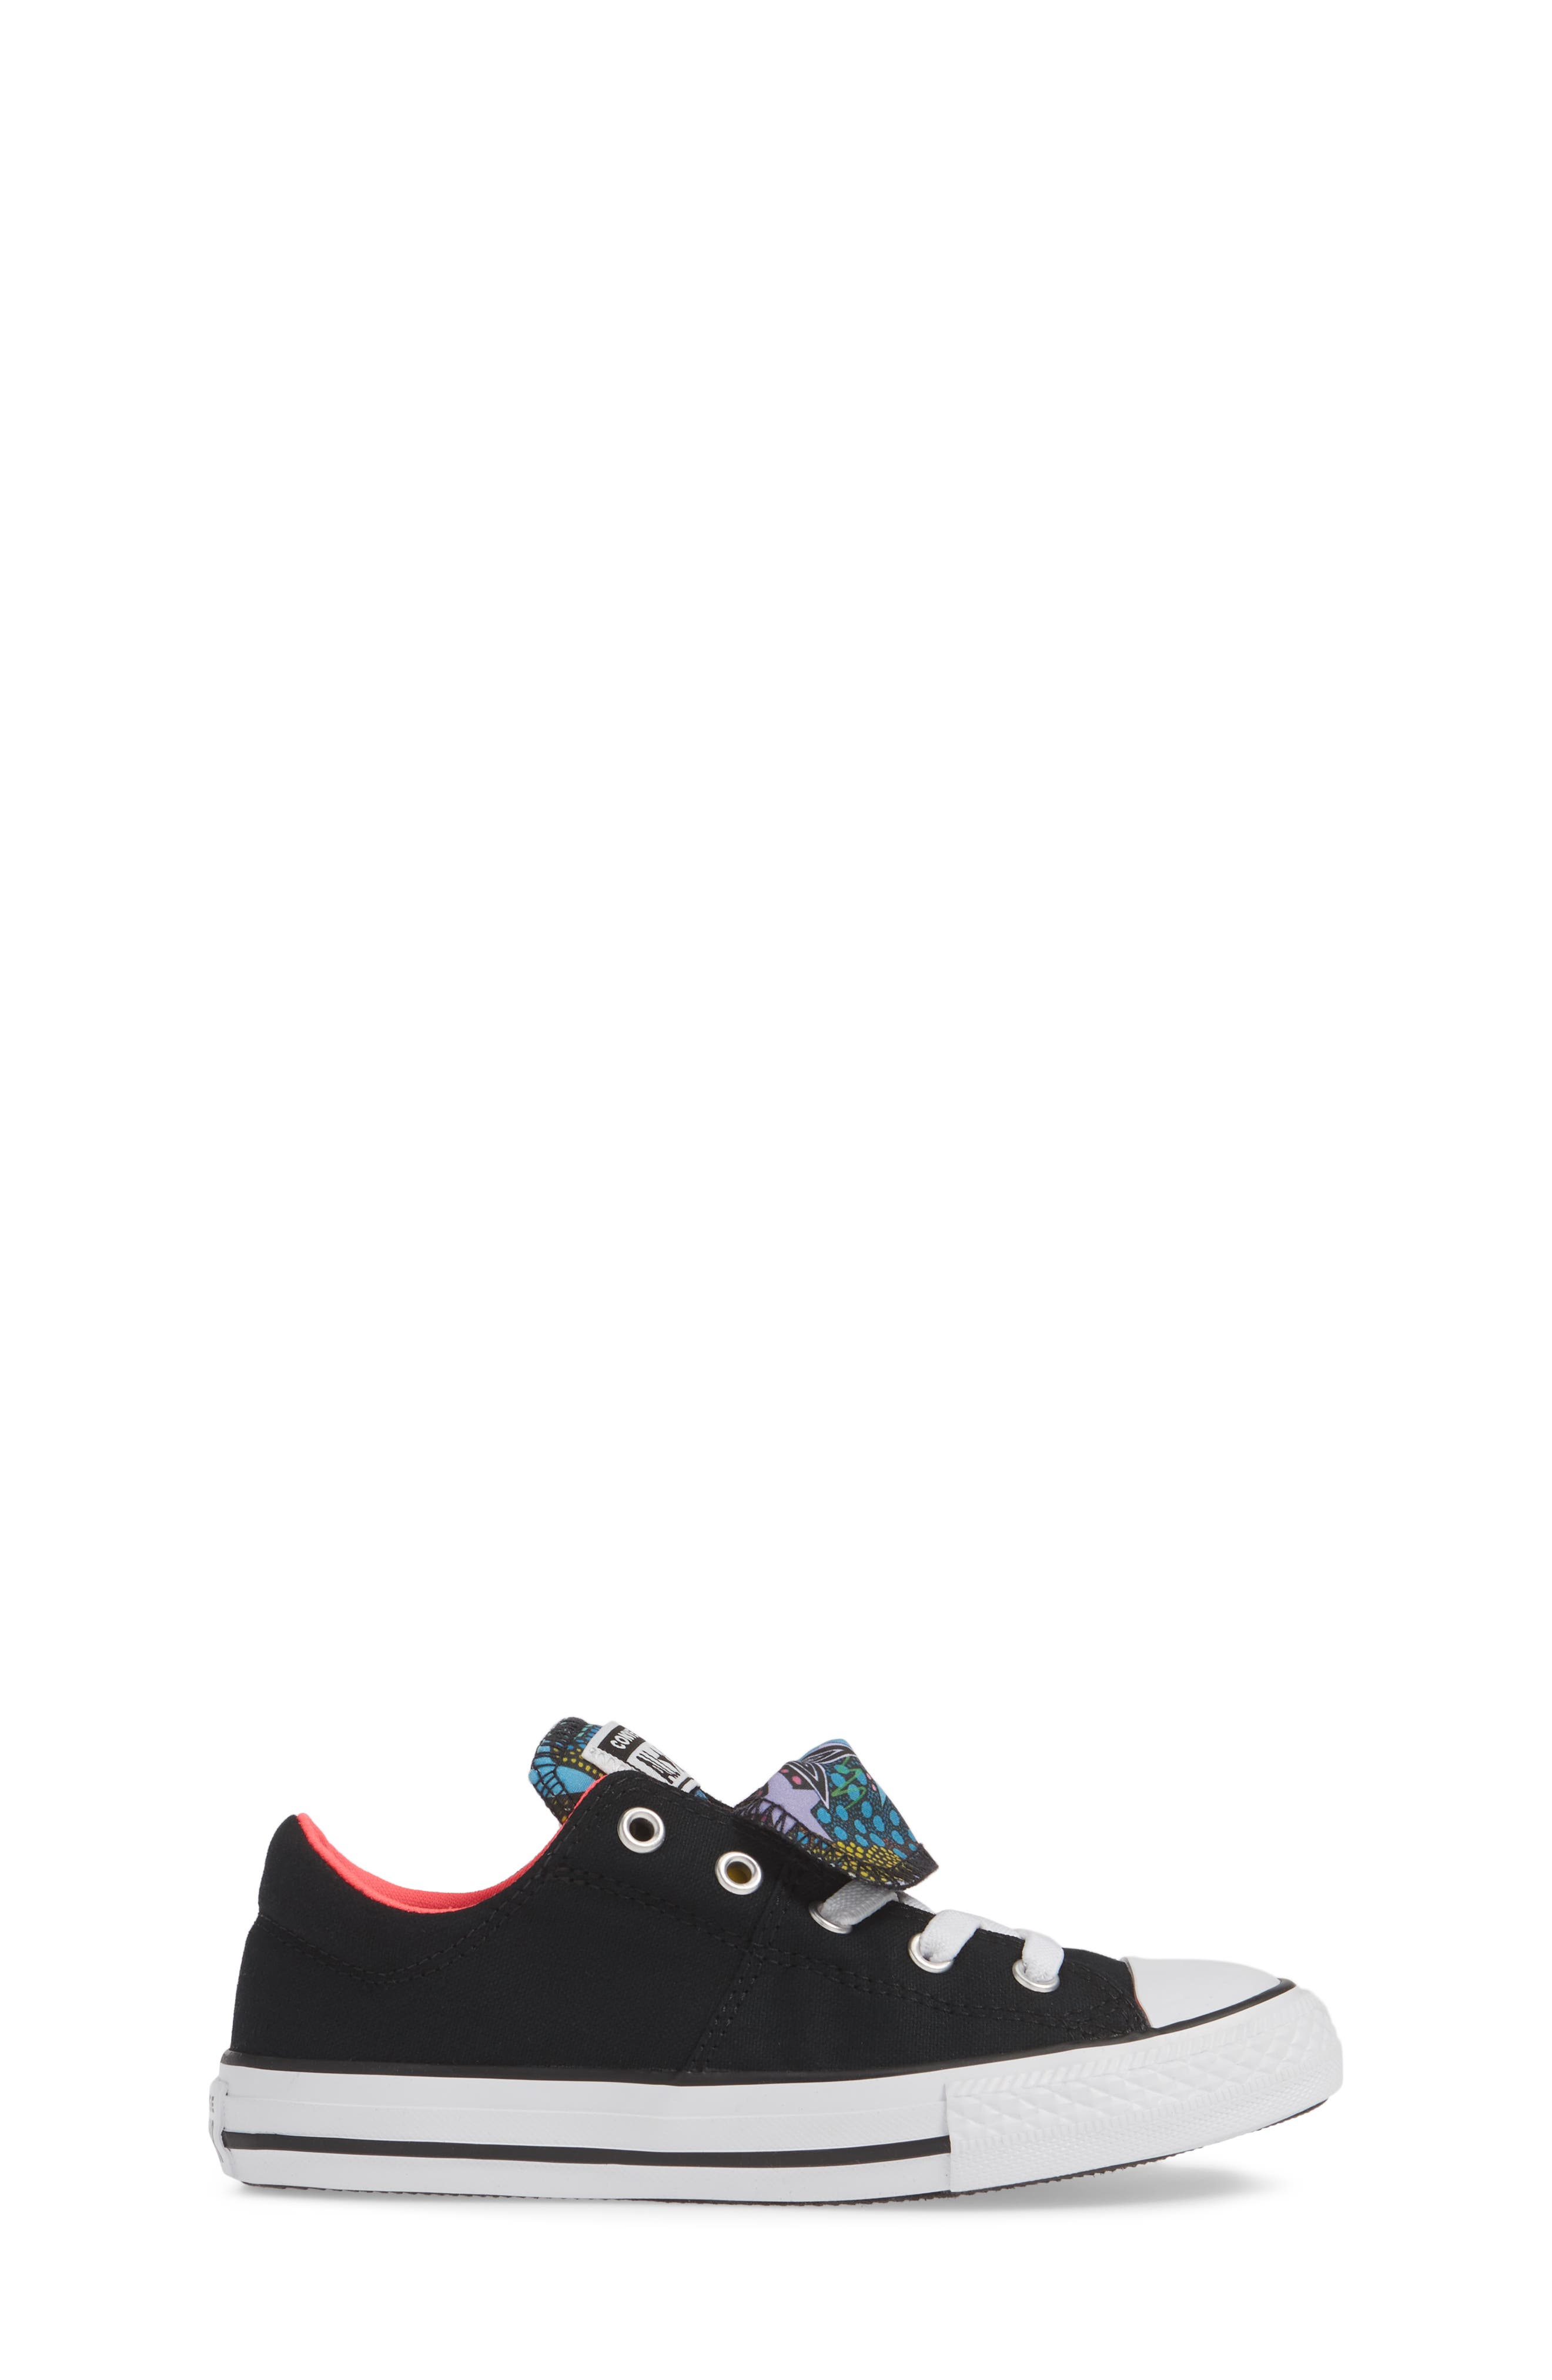 CONVERSE, Chuck Taylor<sup>®</sup> All Star<sup>®</sup> Maddie Double Tongue Sneaker, Alternate thumbnail 3, color, 001